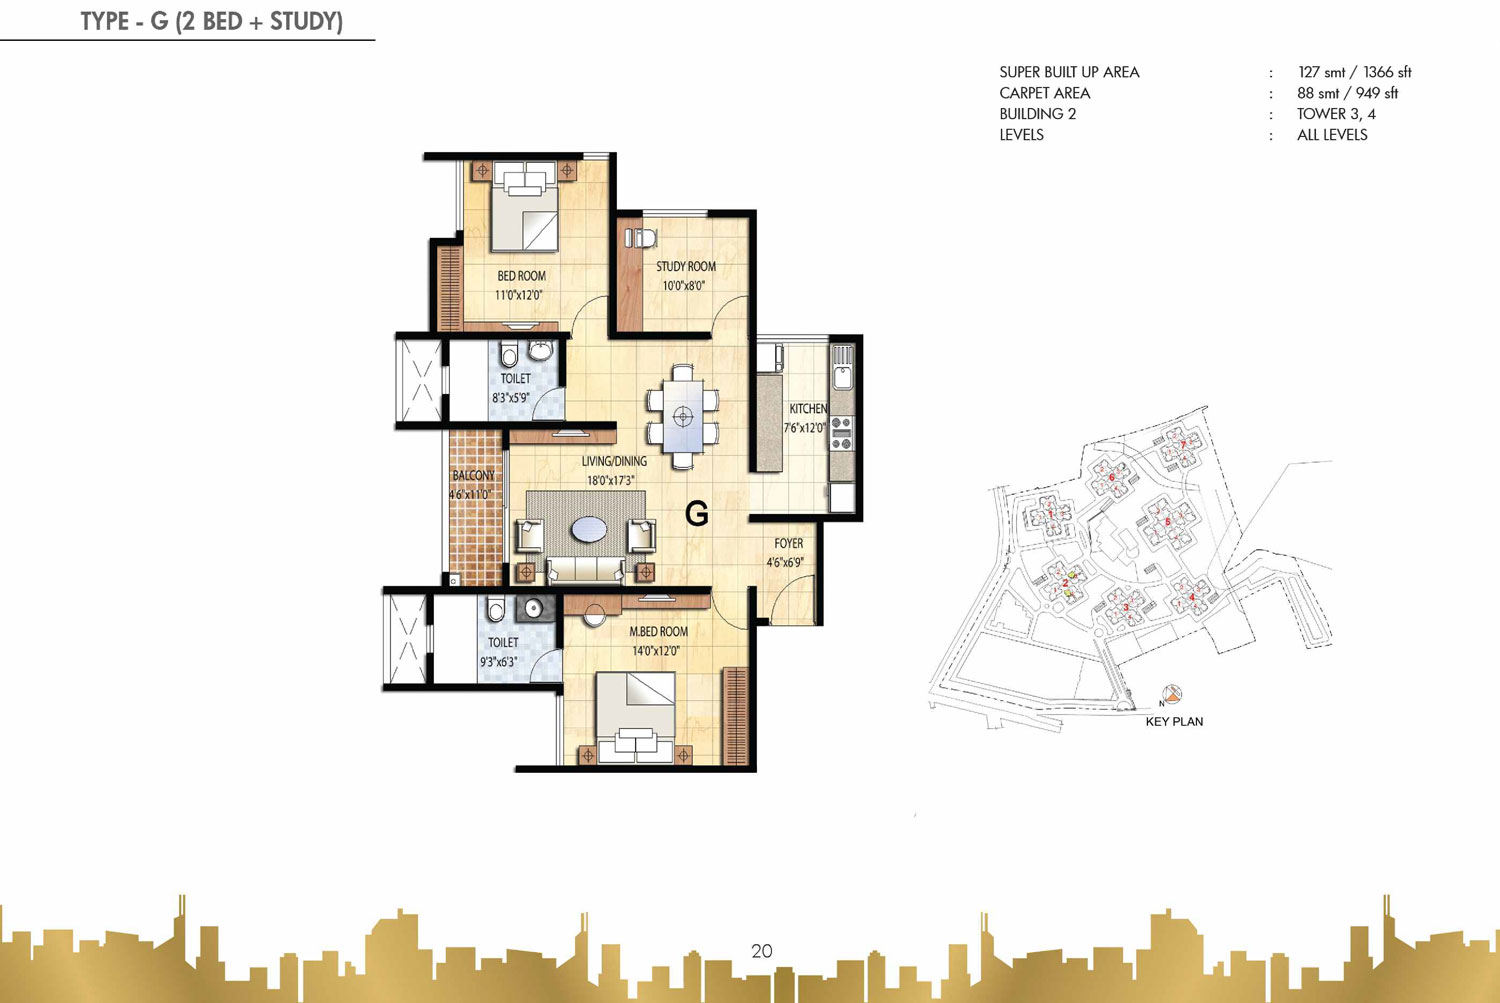 Type G - 2 Bed Study - 1366 Sq Ft